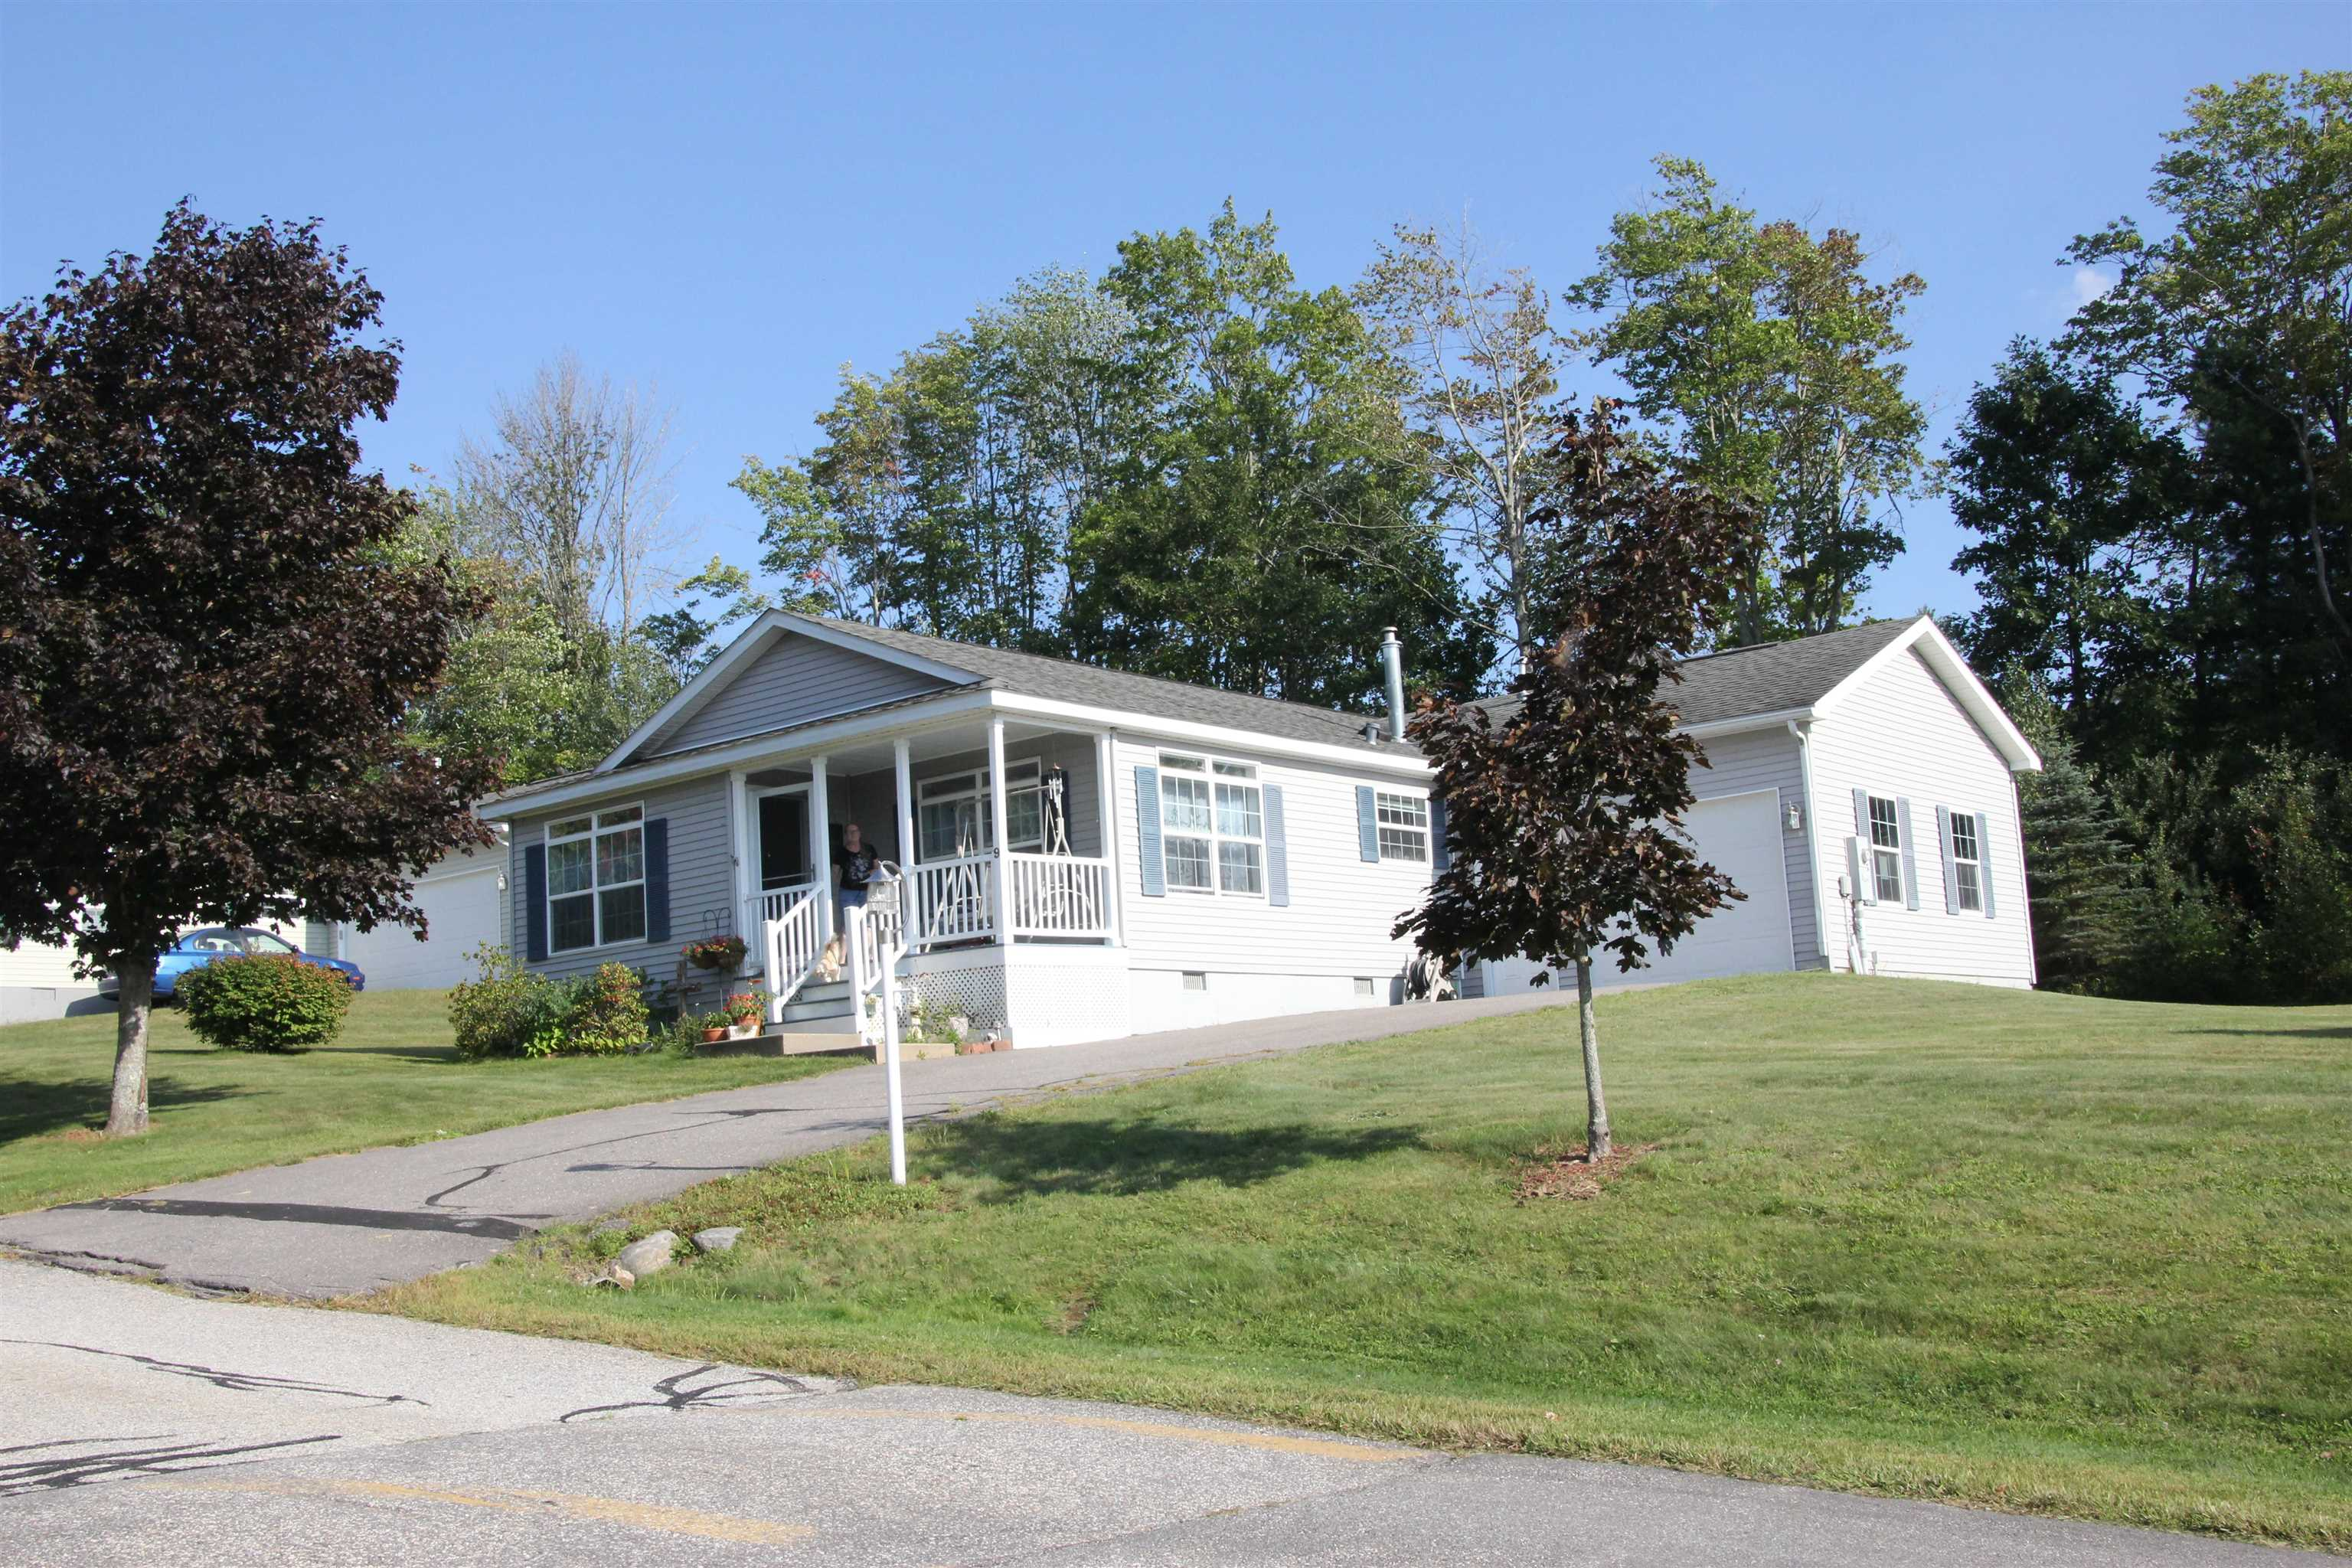 Photo of 9 Mountain View Drive Franklin NH 03235